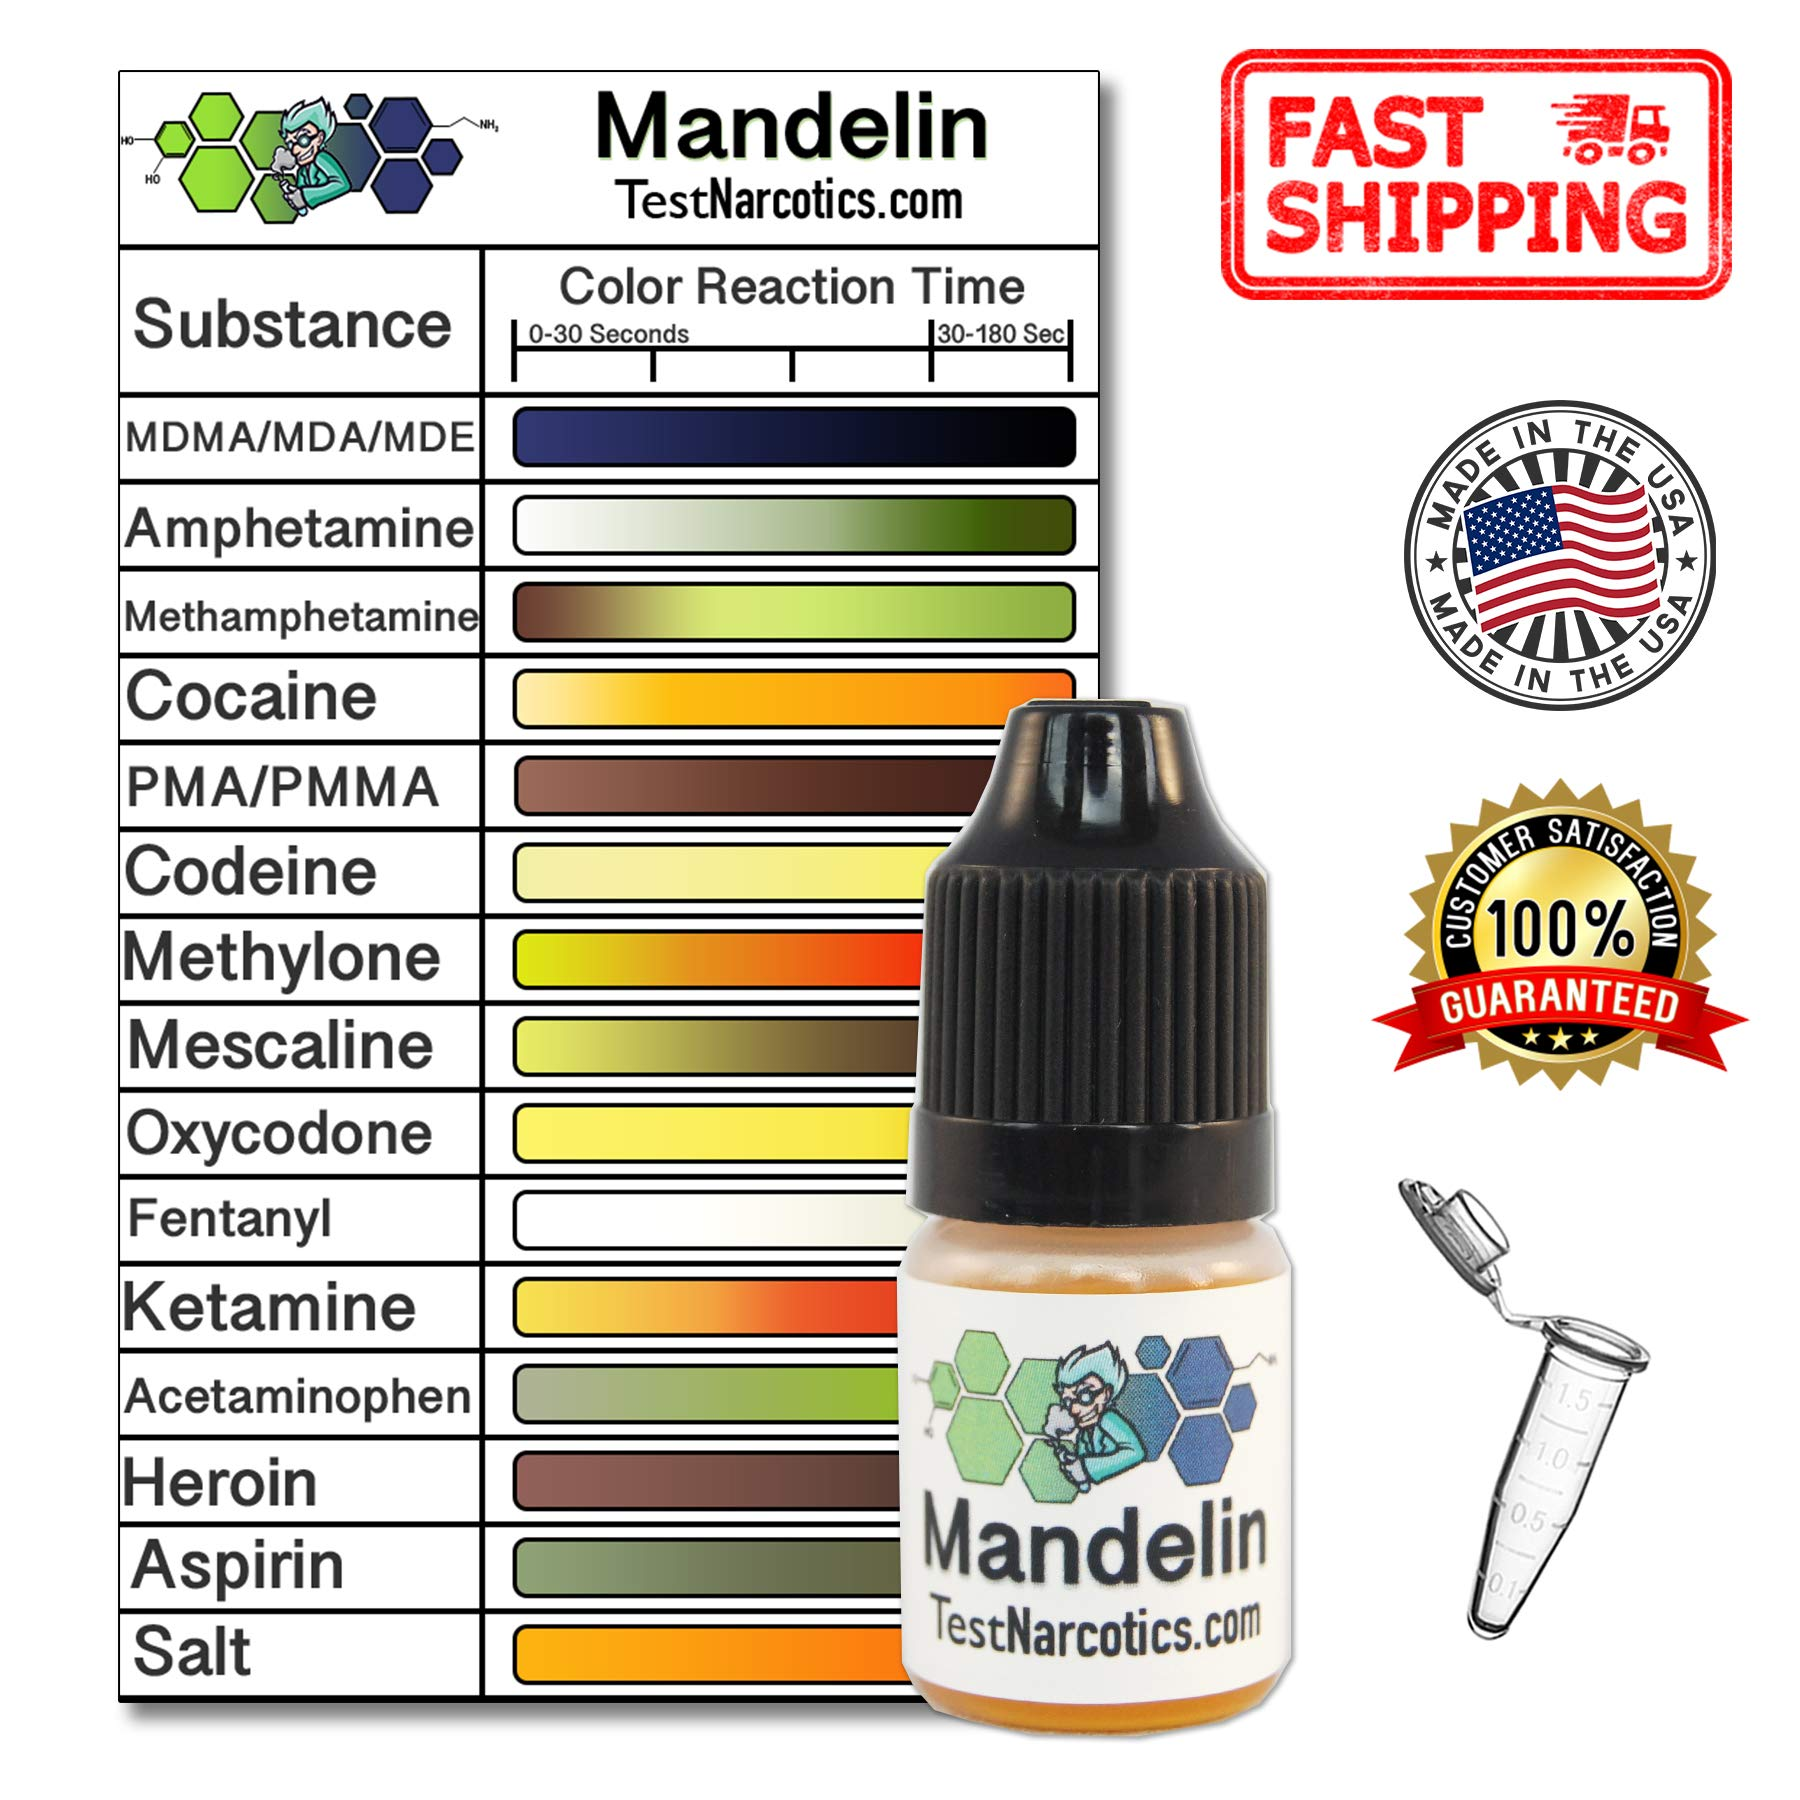 Test Narcotics - Mandelin Reagent Testing Kit | 7ml Bottle for up to 140 Individual Tests by Test Narcotics